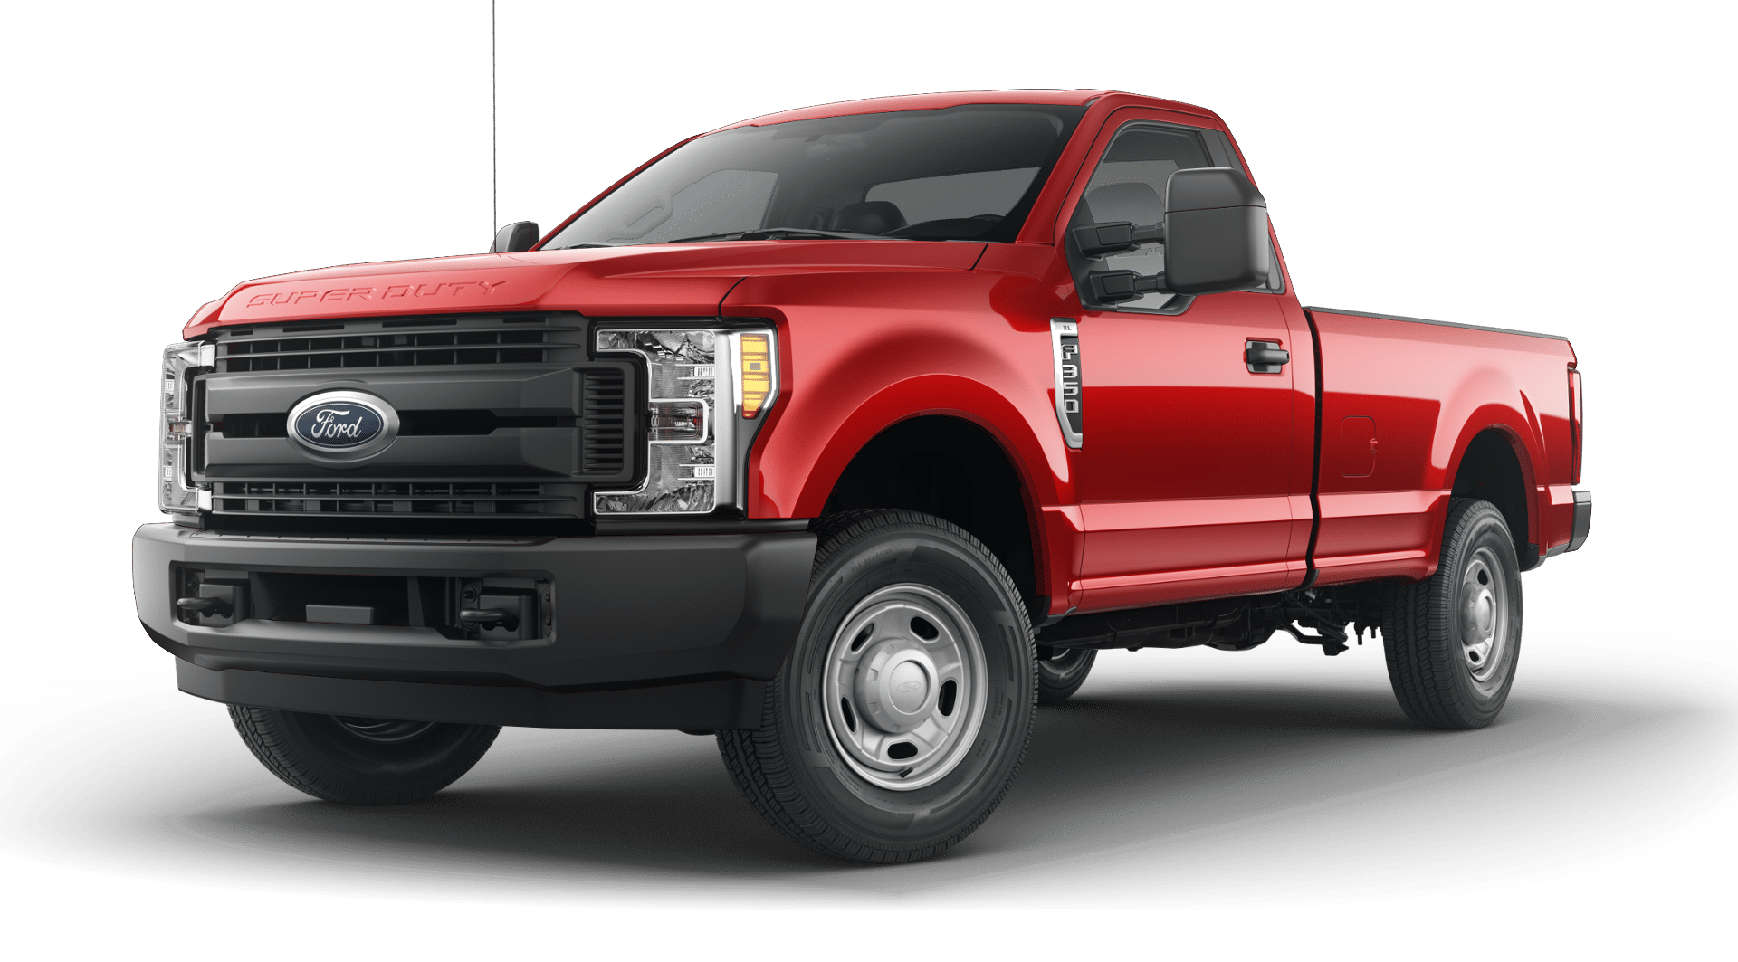 Ford F-350 2019 XL 6.2 V8 SOHC FFV Бензин 6-ст. АКПП Torqshift® Heavy-Duty Selectshift™ Дизель Задний